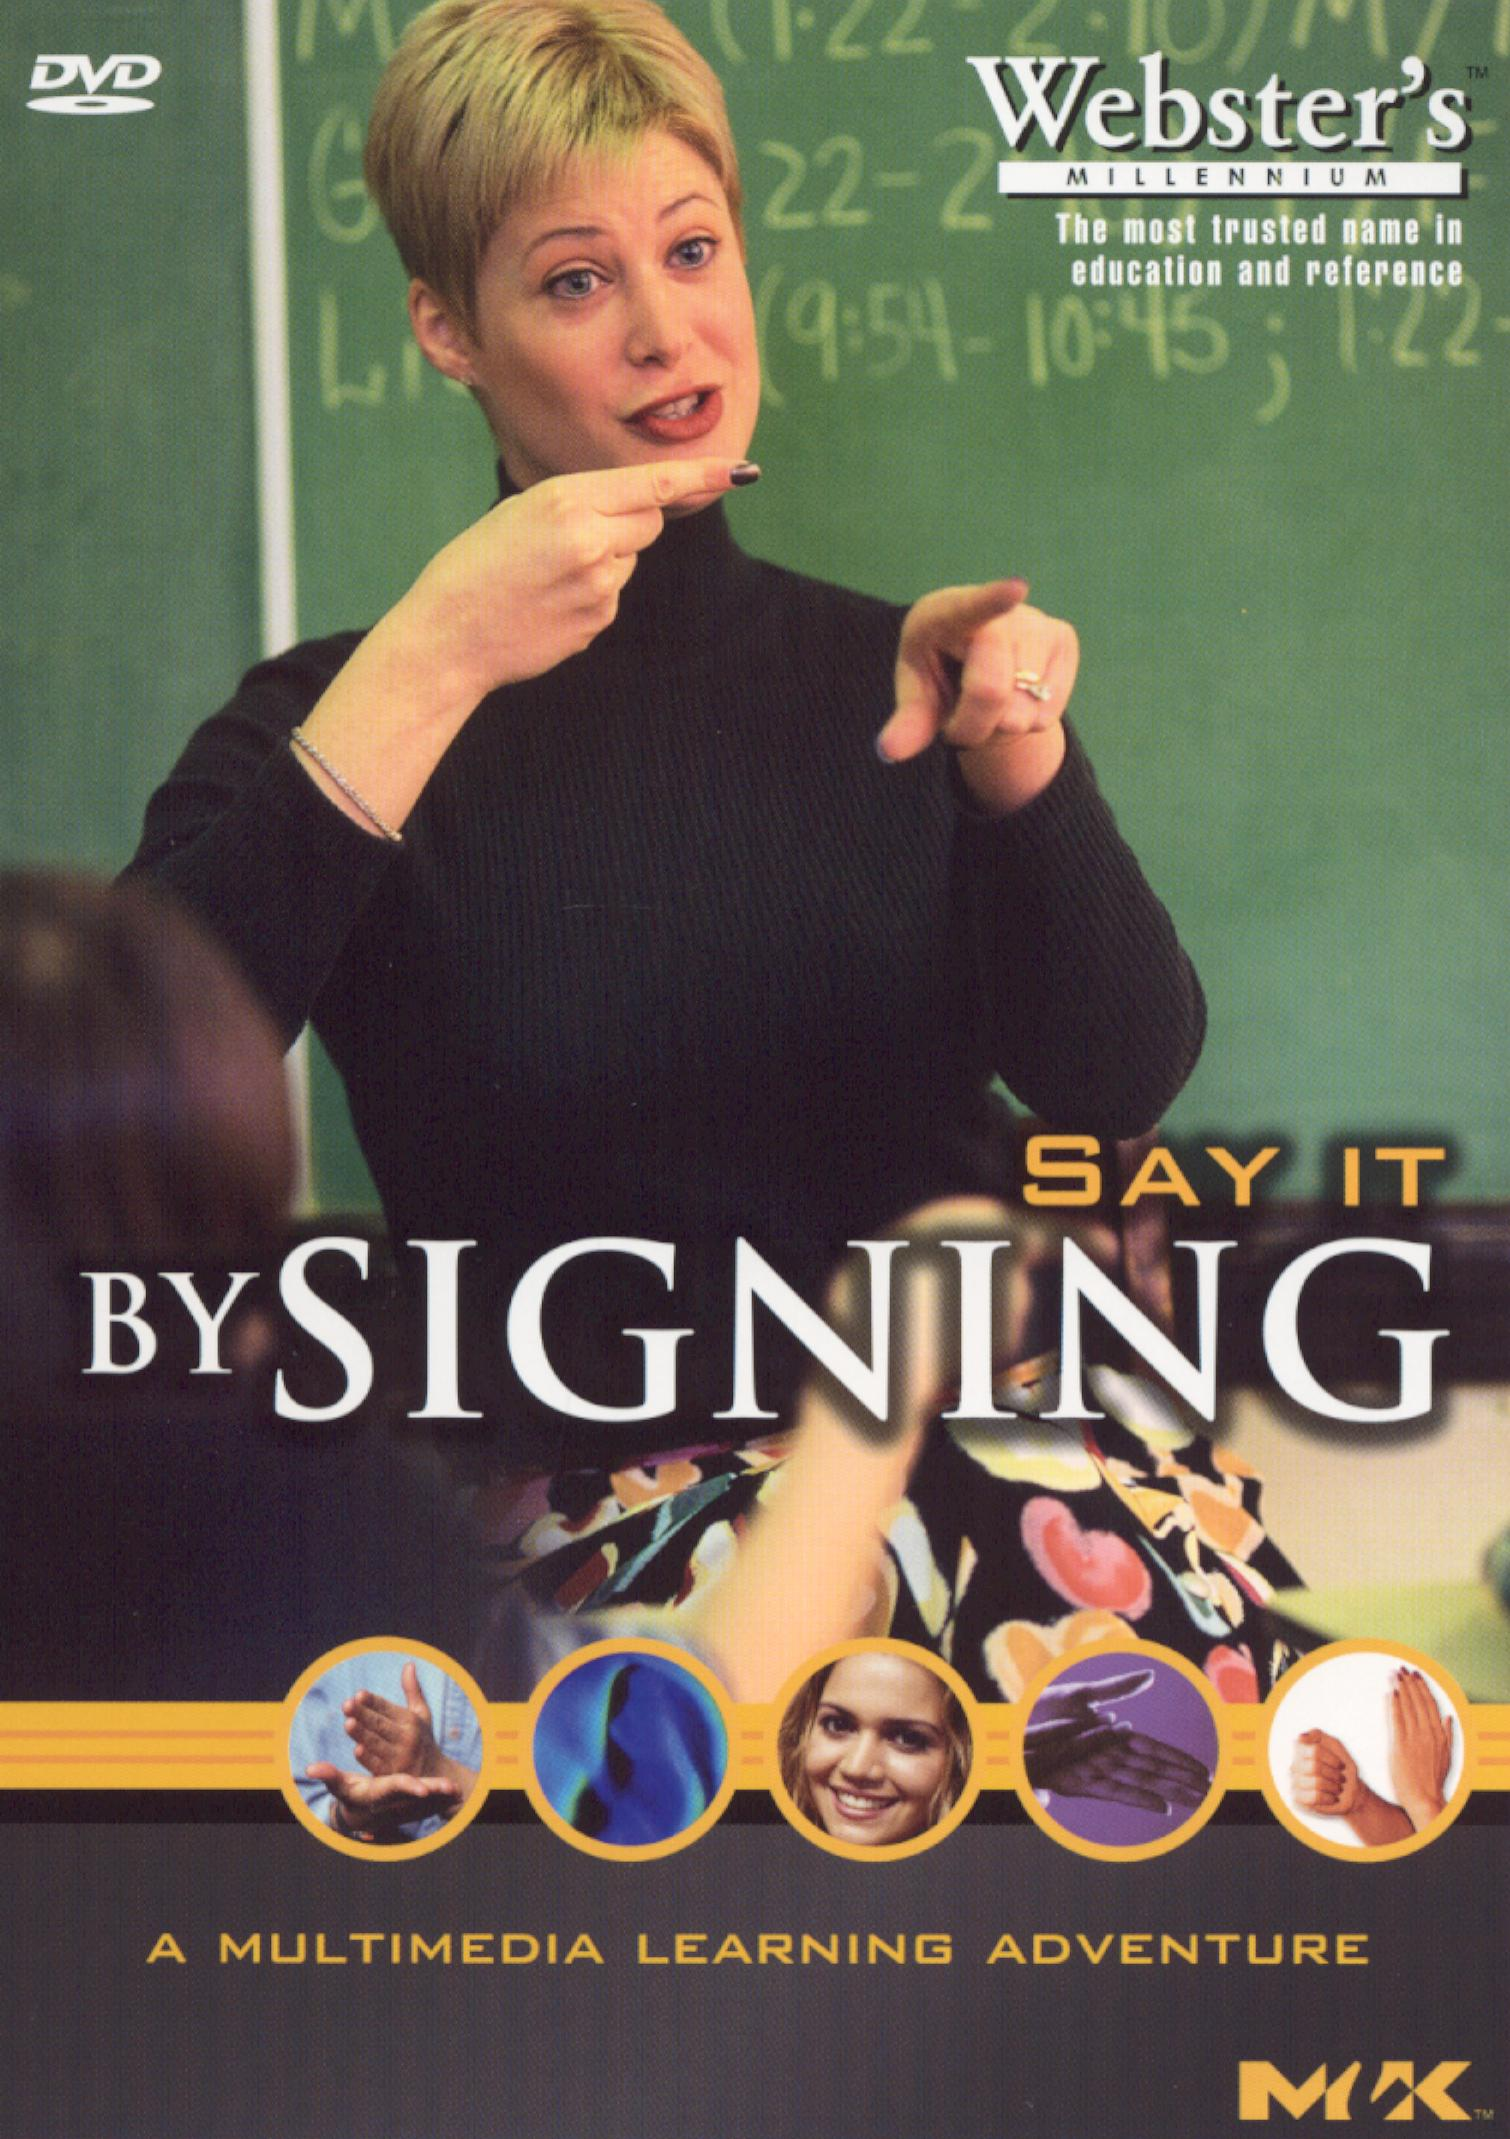 Webster's Millennium ASL: Say it by Signing